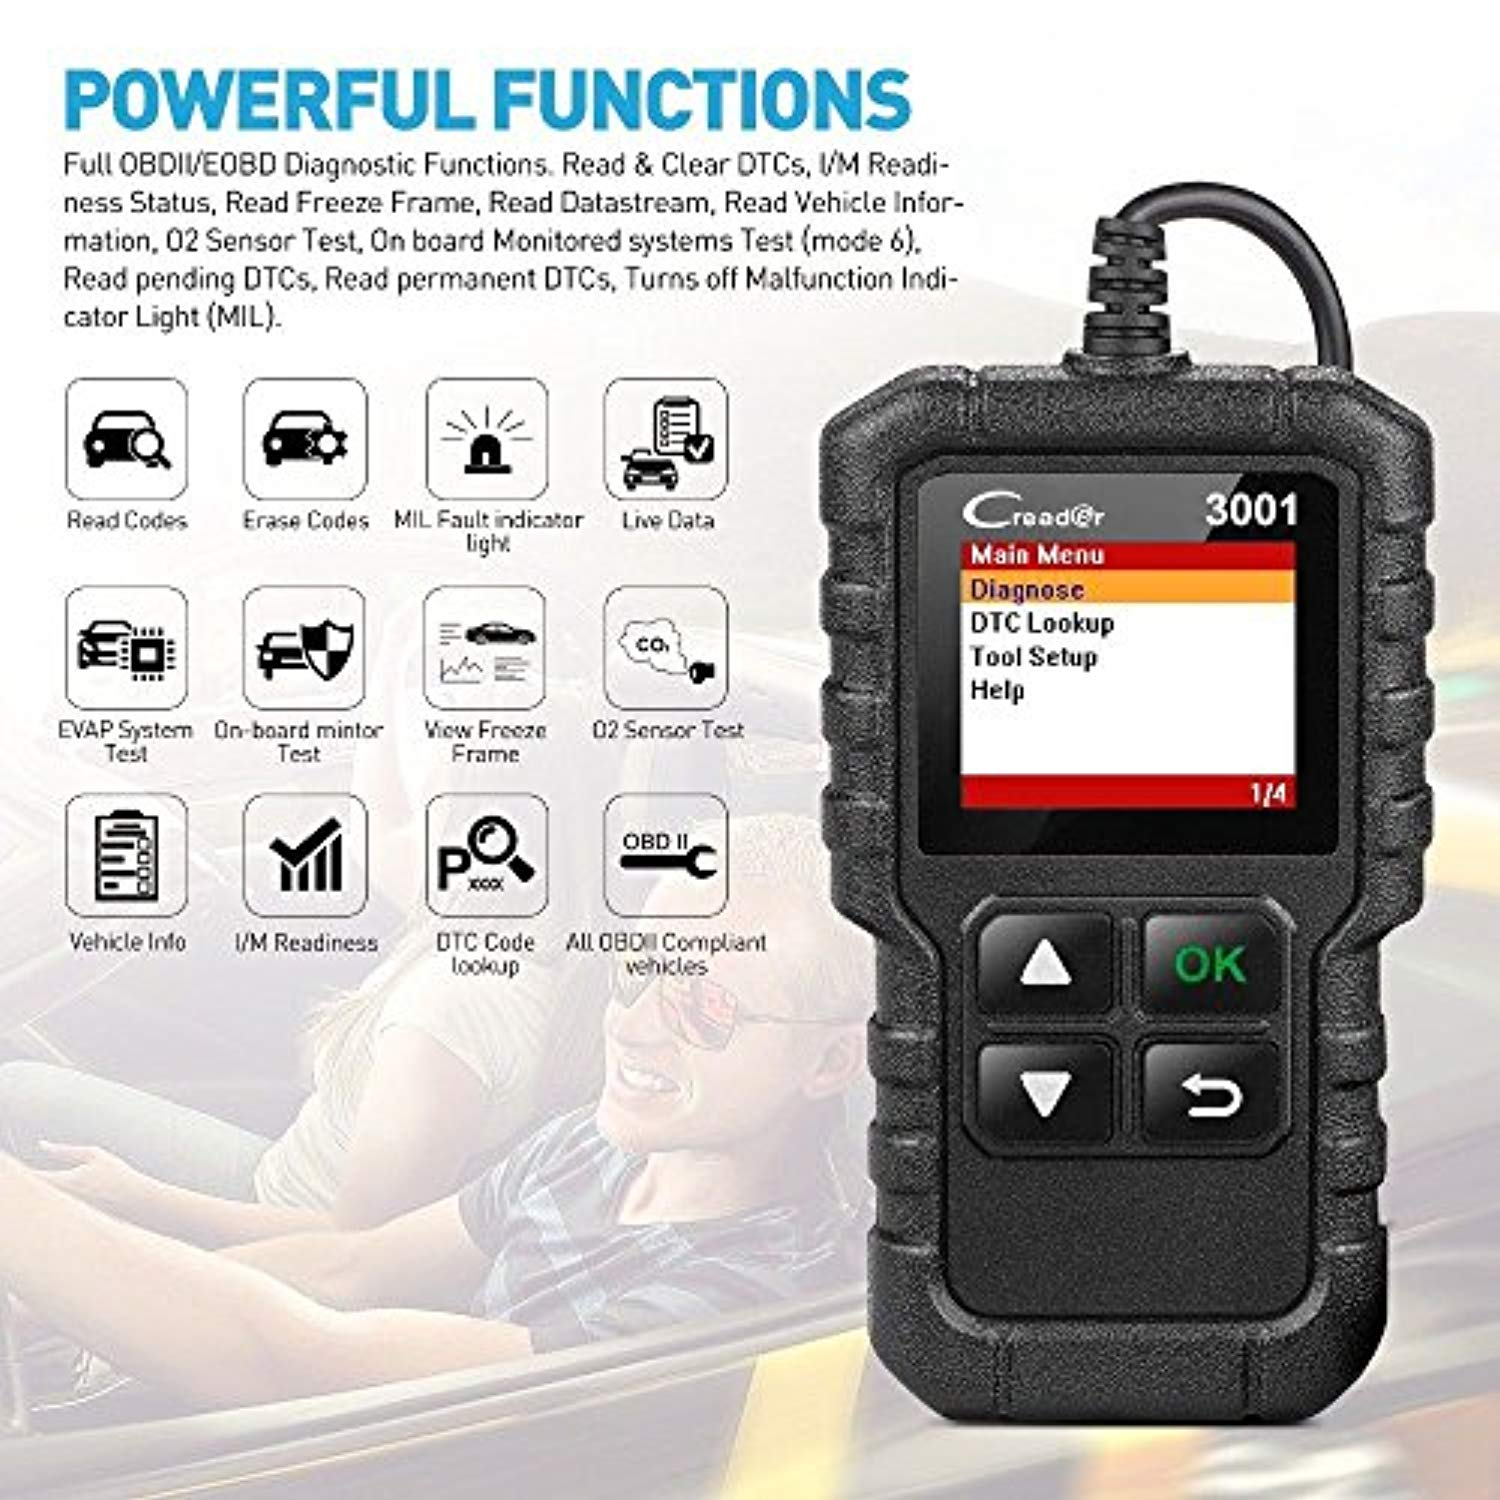 LAUNCH Creader 3001 OBD2 Scanner Automotive Car Diagnostic